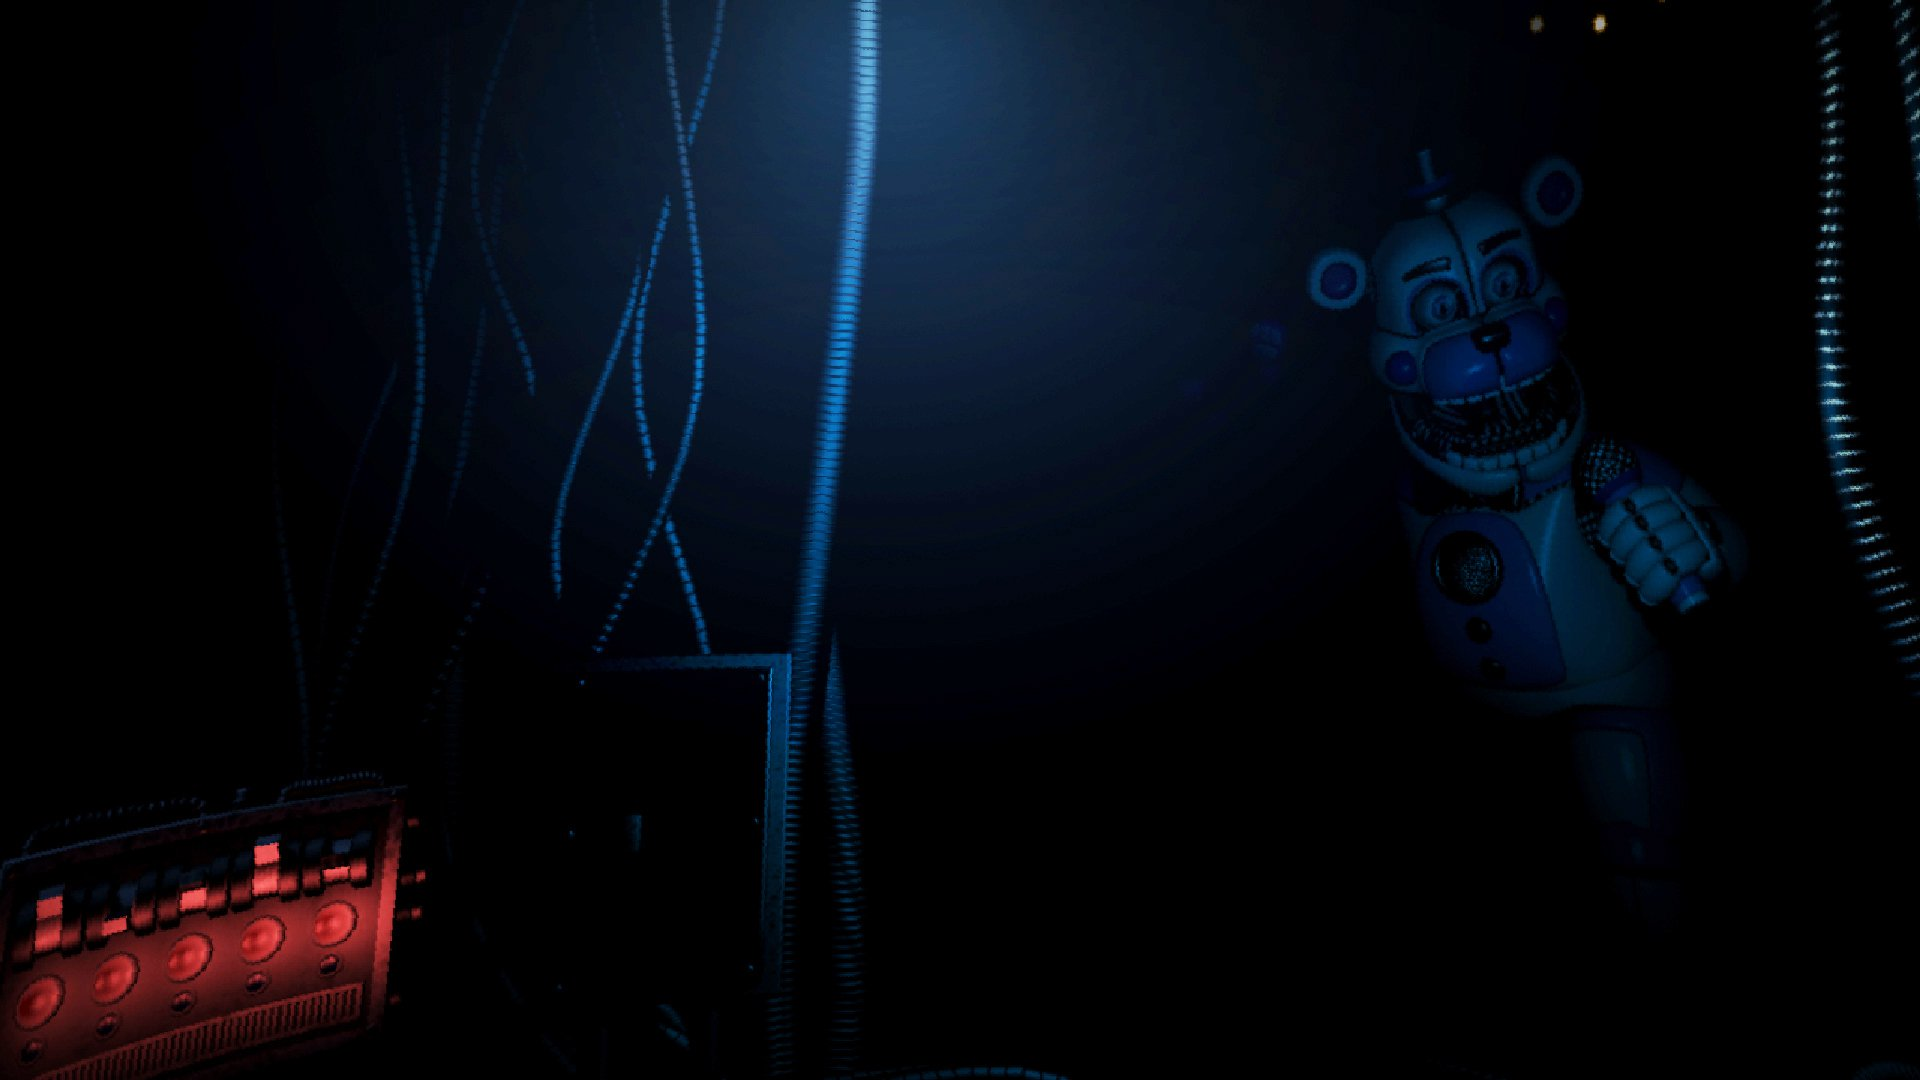 """Five Nights at Freddy's: Sister Location"" Set for October 2016 - Debatable, Though, Judging Previous Games' Records"